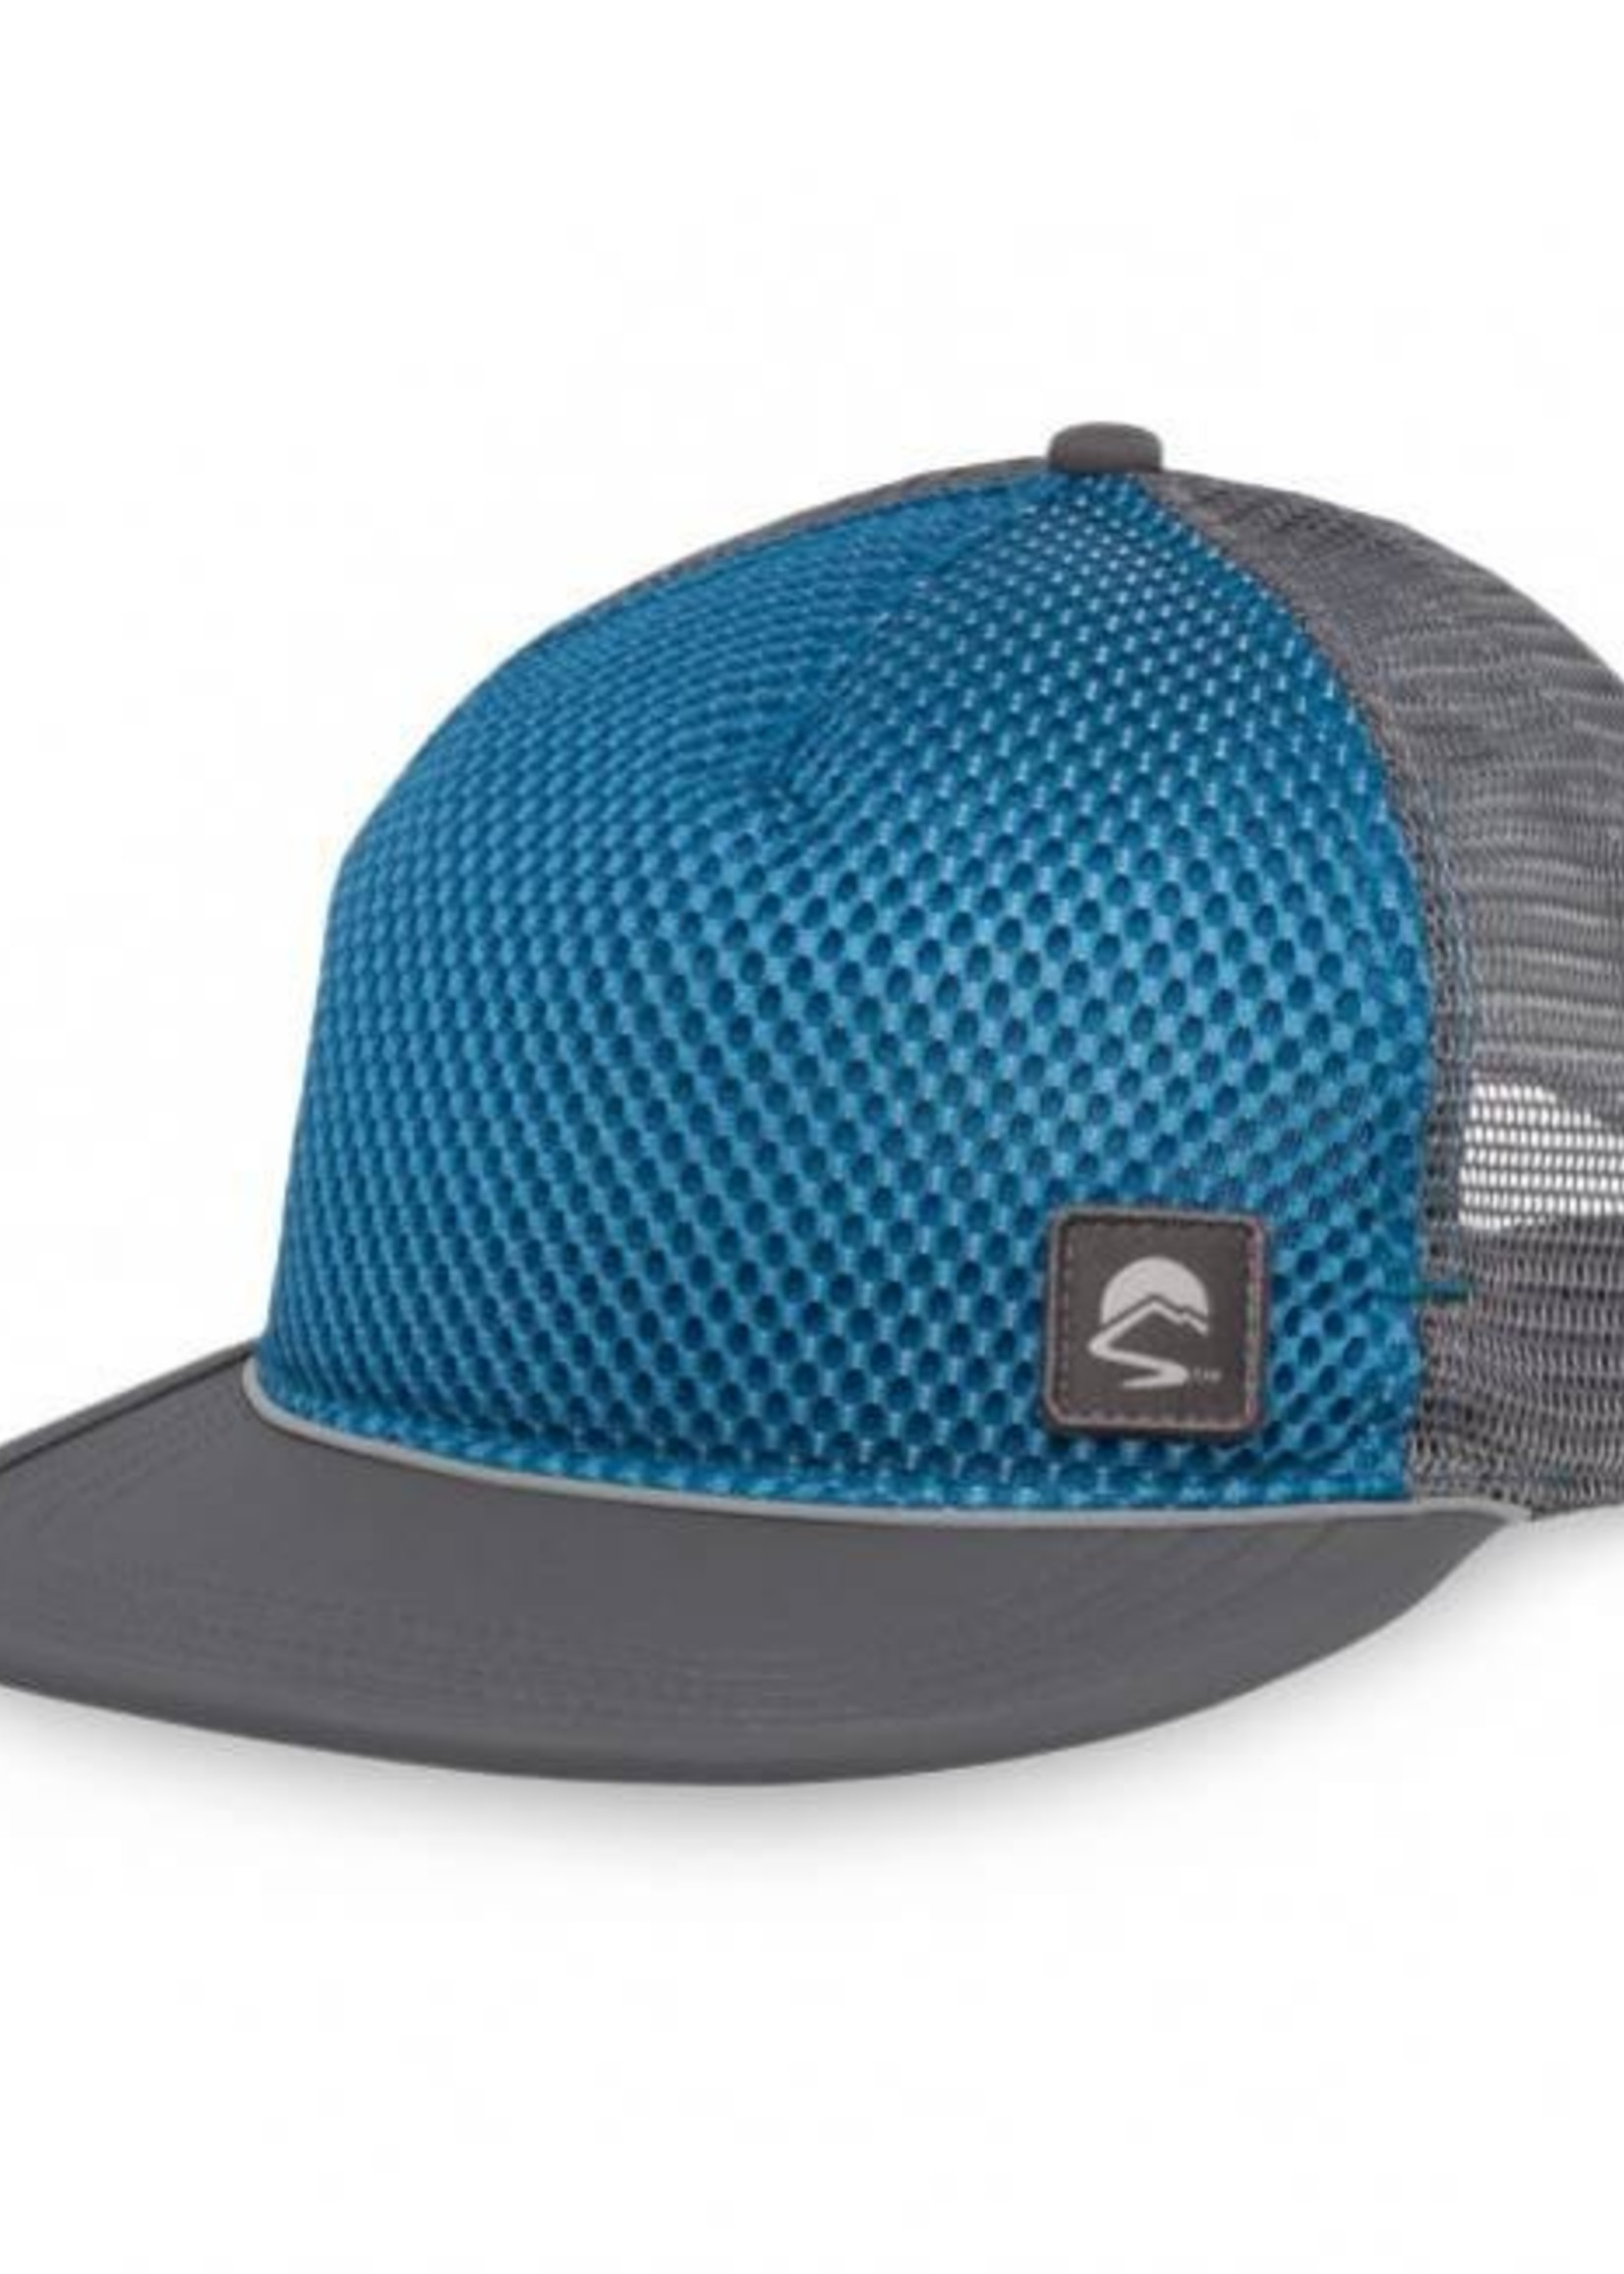 Sunday Afternoons VANTAGE POINT TRUCKER HAT